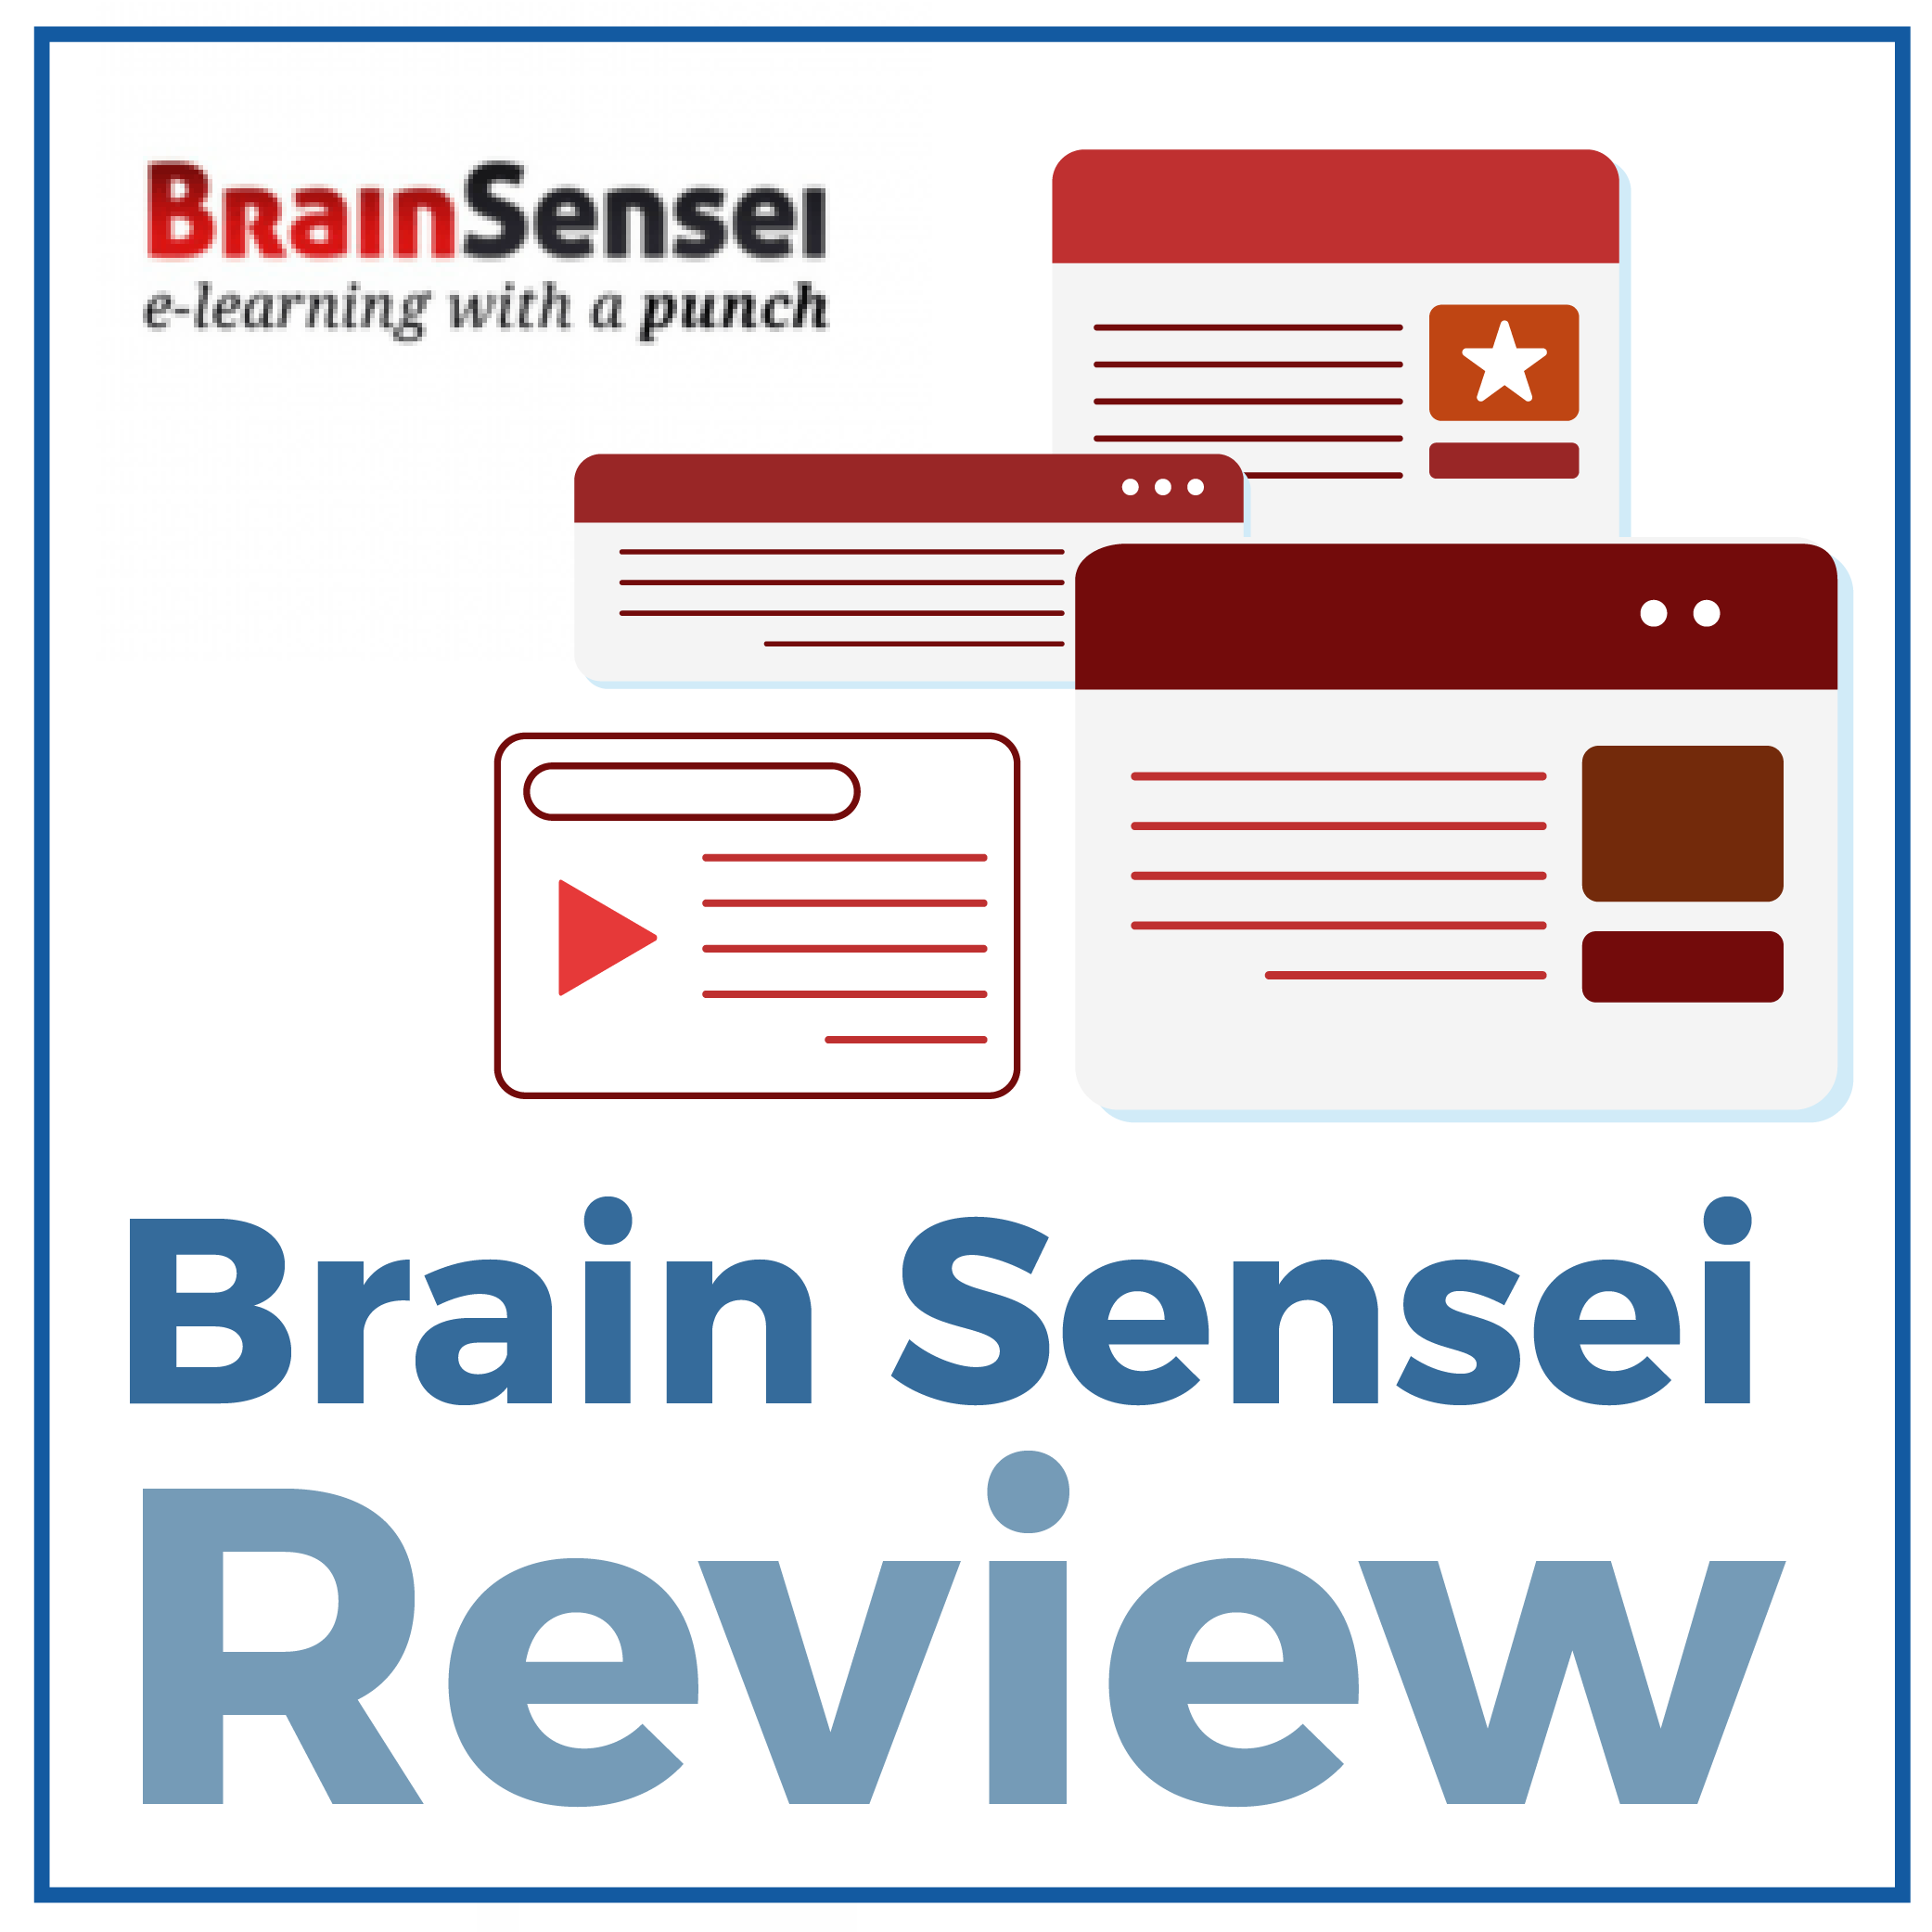 Brain Sensei Review